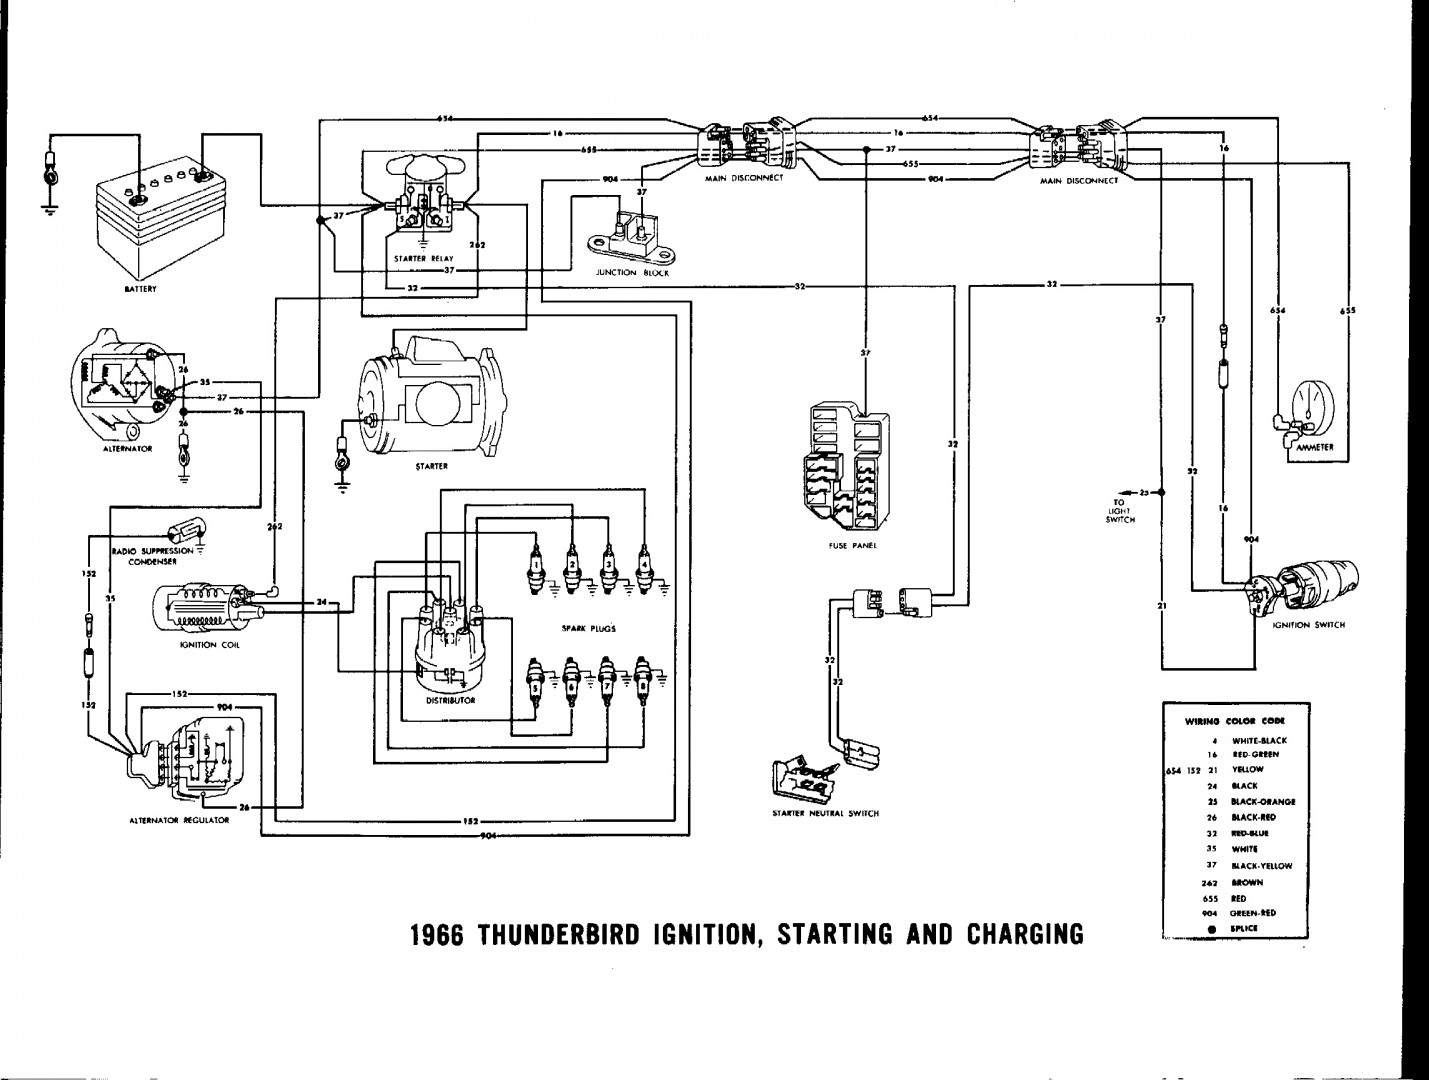 1965 Ford T Bird Wiring | Download Wiring Diagram  Ford Alternator Wiring Diagram on 1967 camaro alternator wiring diagram, 67 ford mustang distributor wiring, 67 ford mustang wiring diagram, mustang alternator wiring diagram, 67 mustang ignition wiring diagram, 3 wire alternator wiring diagram, 67 camaro alternator wiring diagram,